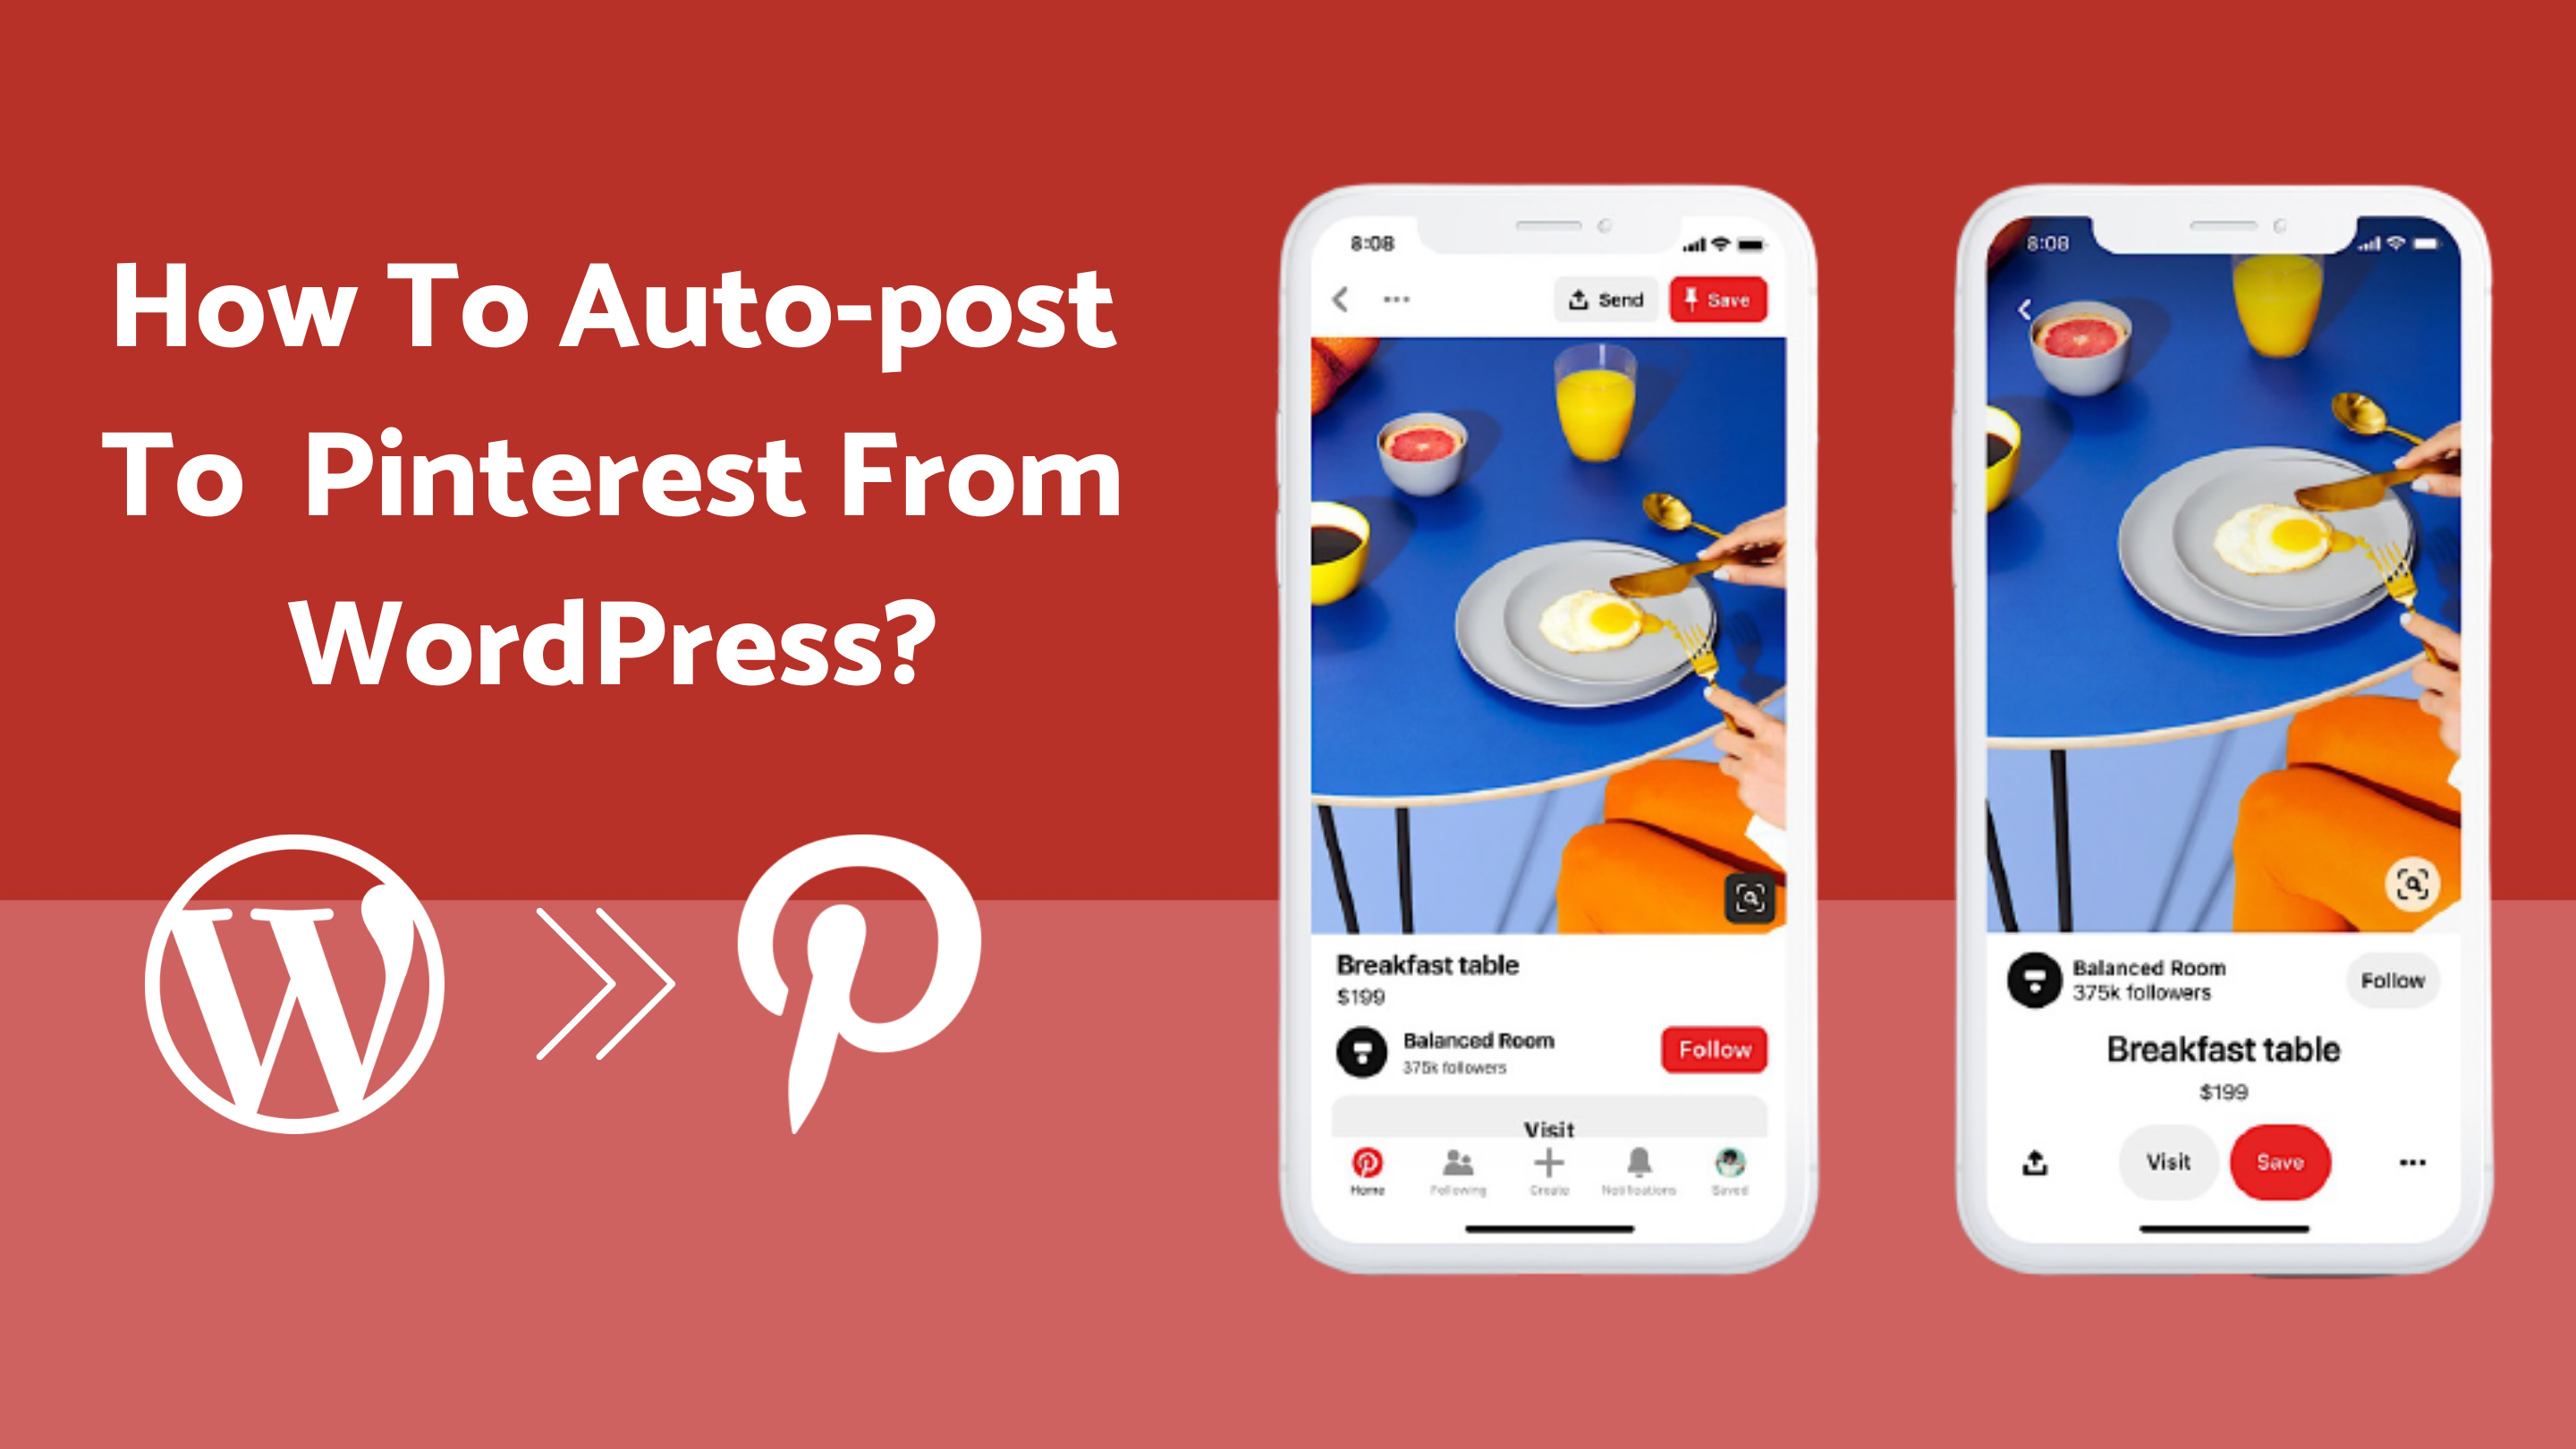 How To Auto-Post To Pinterest From WordPress [A Complete Guide]